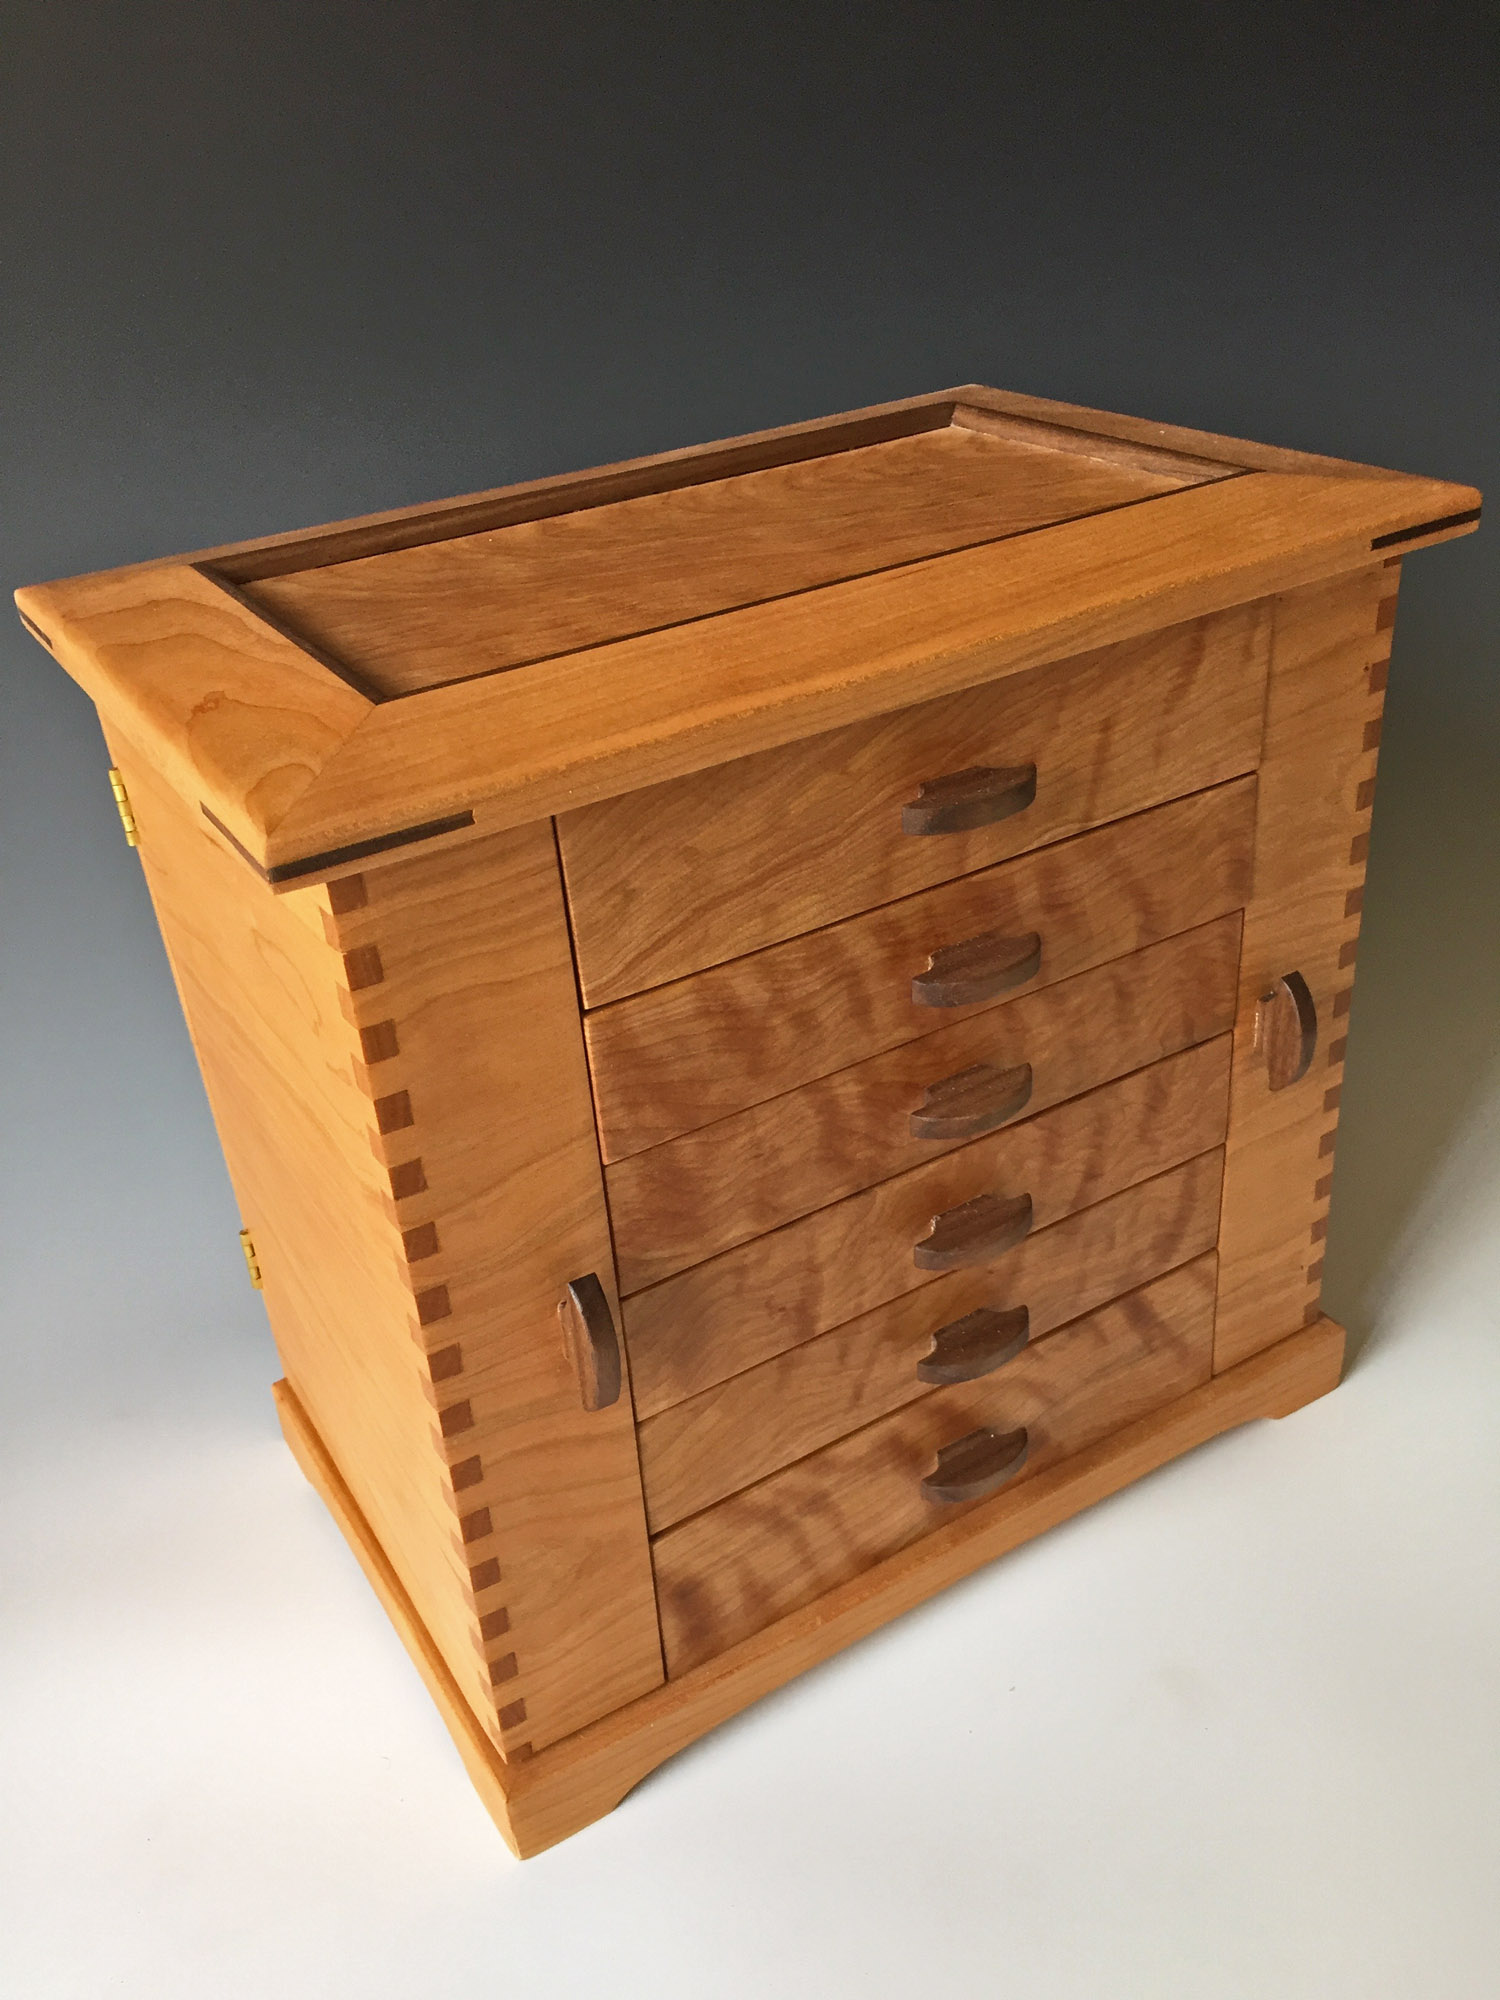 Jewelry Box Made Of Wood Of Handmade Wooden Jewelry Box